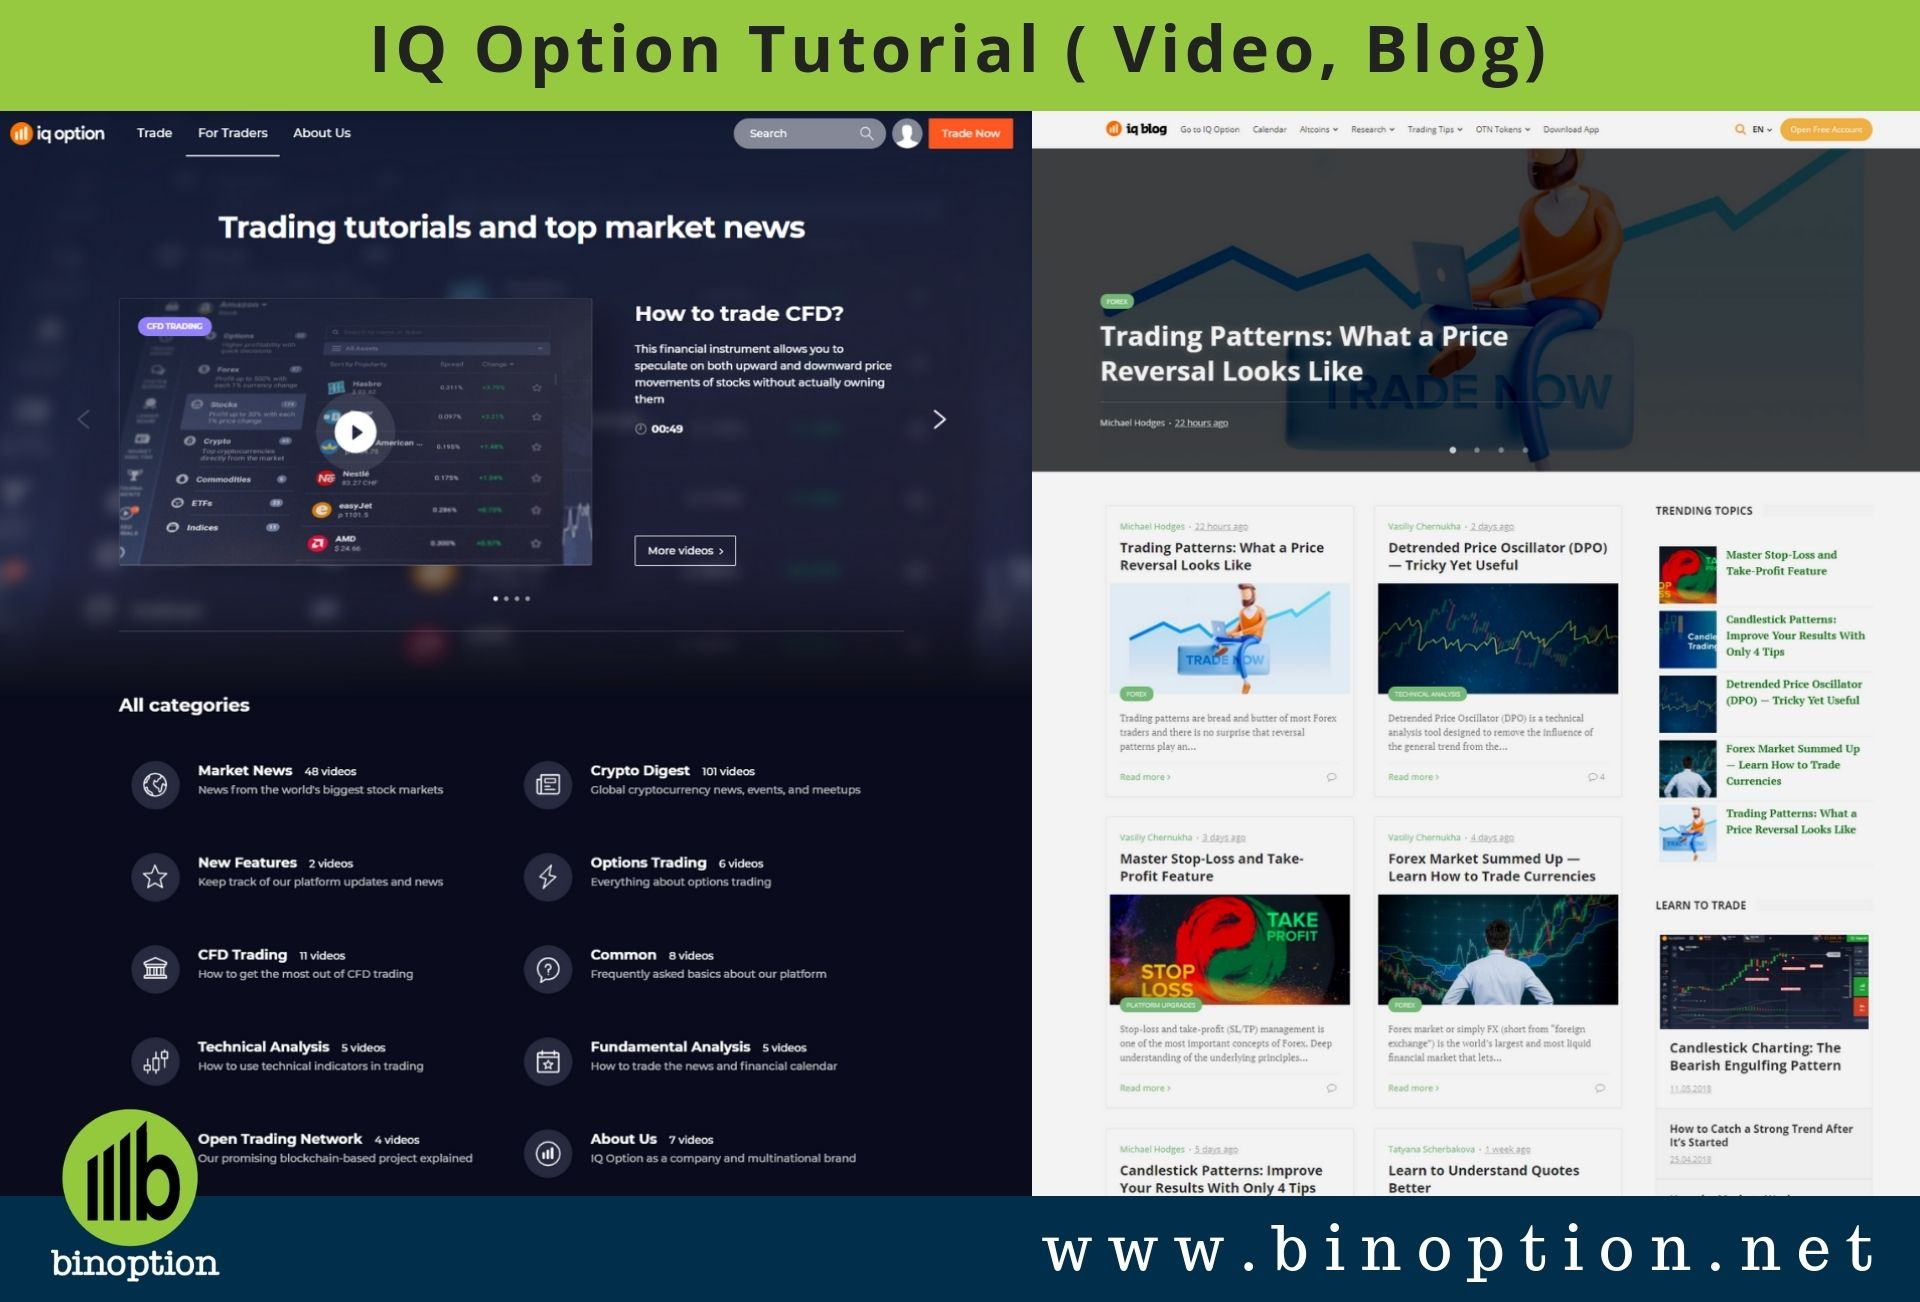 Cfd trading video tutorial, cfd trading conditions.